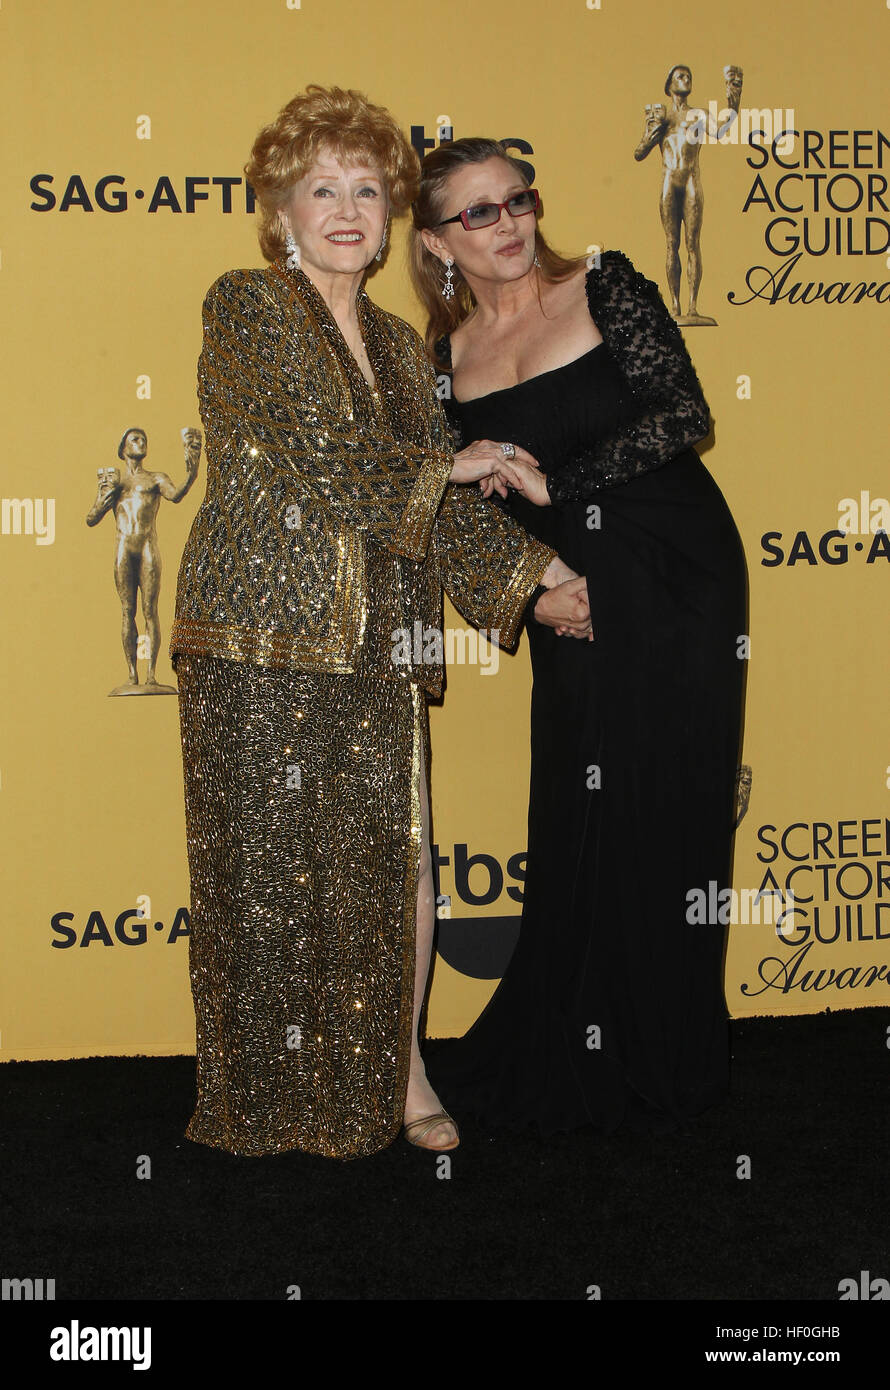 Los Angeles, Ca, USA. 25th Jan, 2016. Debbie Reynolds, Carrie Fisher at the 21st Annual SAG Awards Press Room in - Stock Image